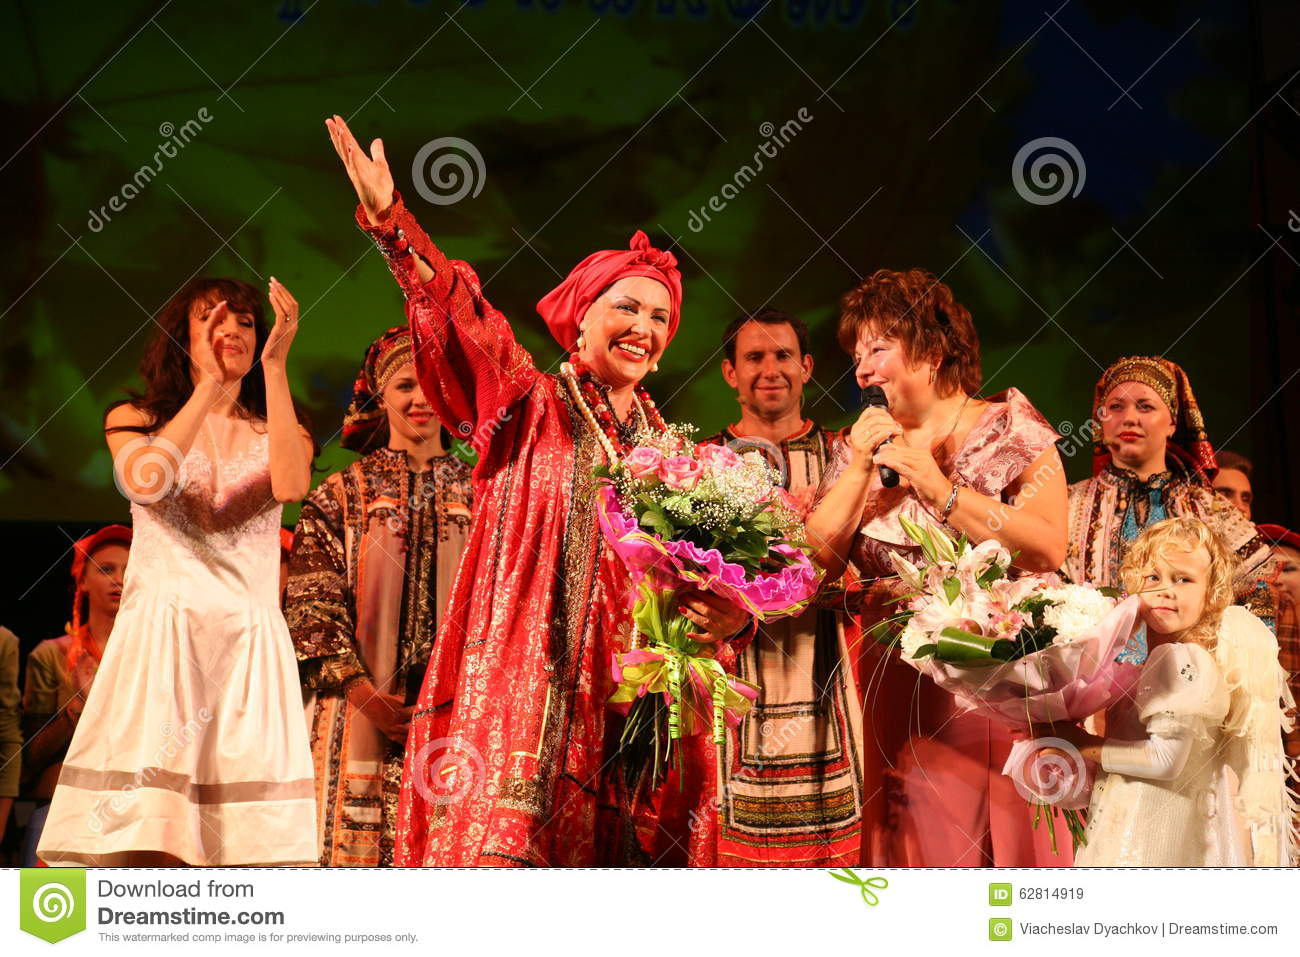 a review of the performance by the russian folk music group